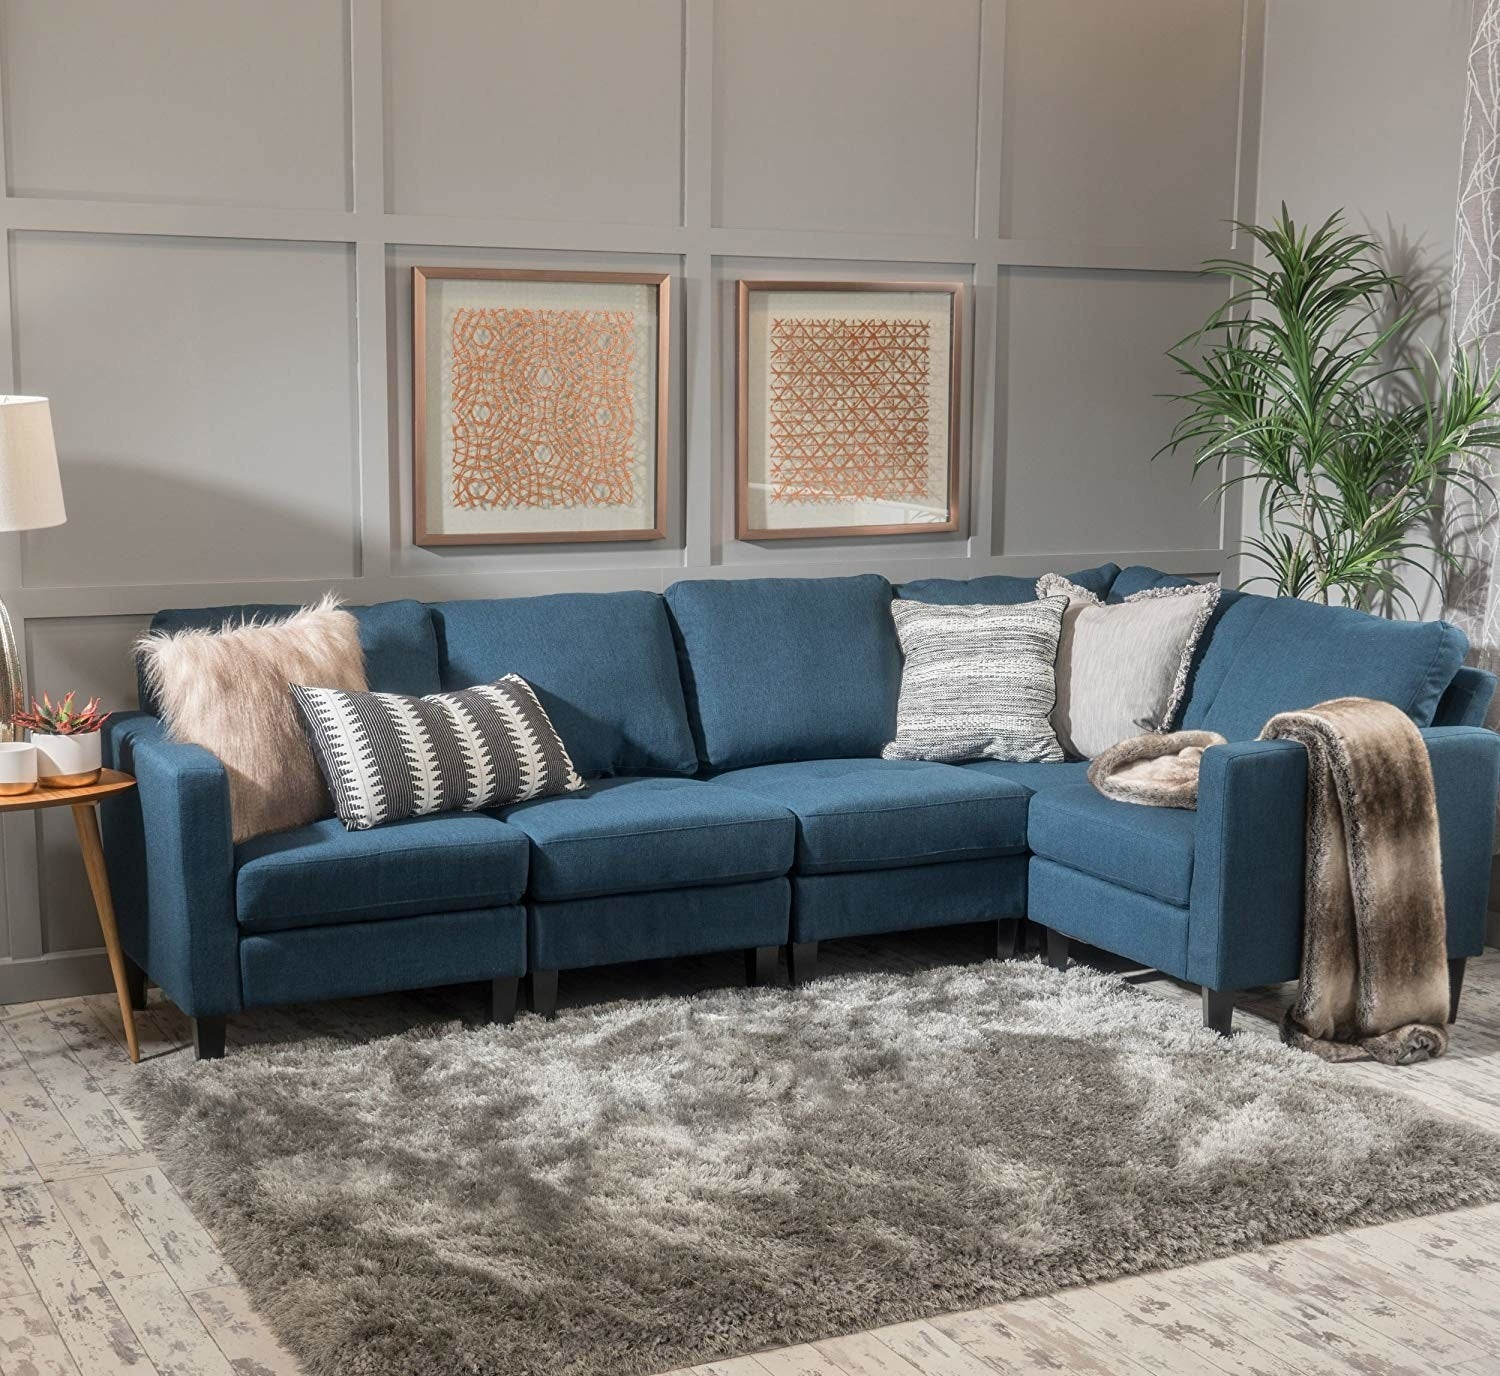 Best Sofa Deals: 30 Of The Best Sofas And Couches You Can Buy Online